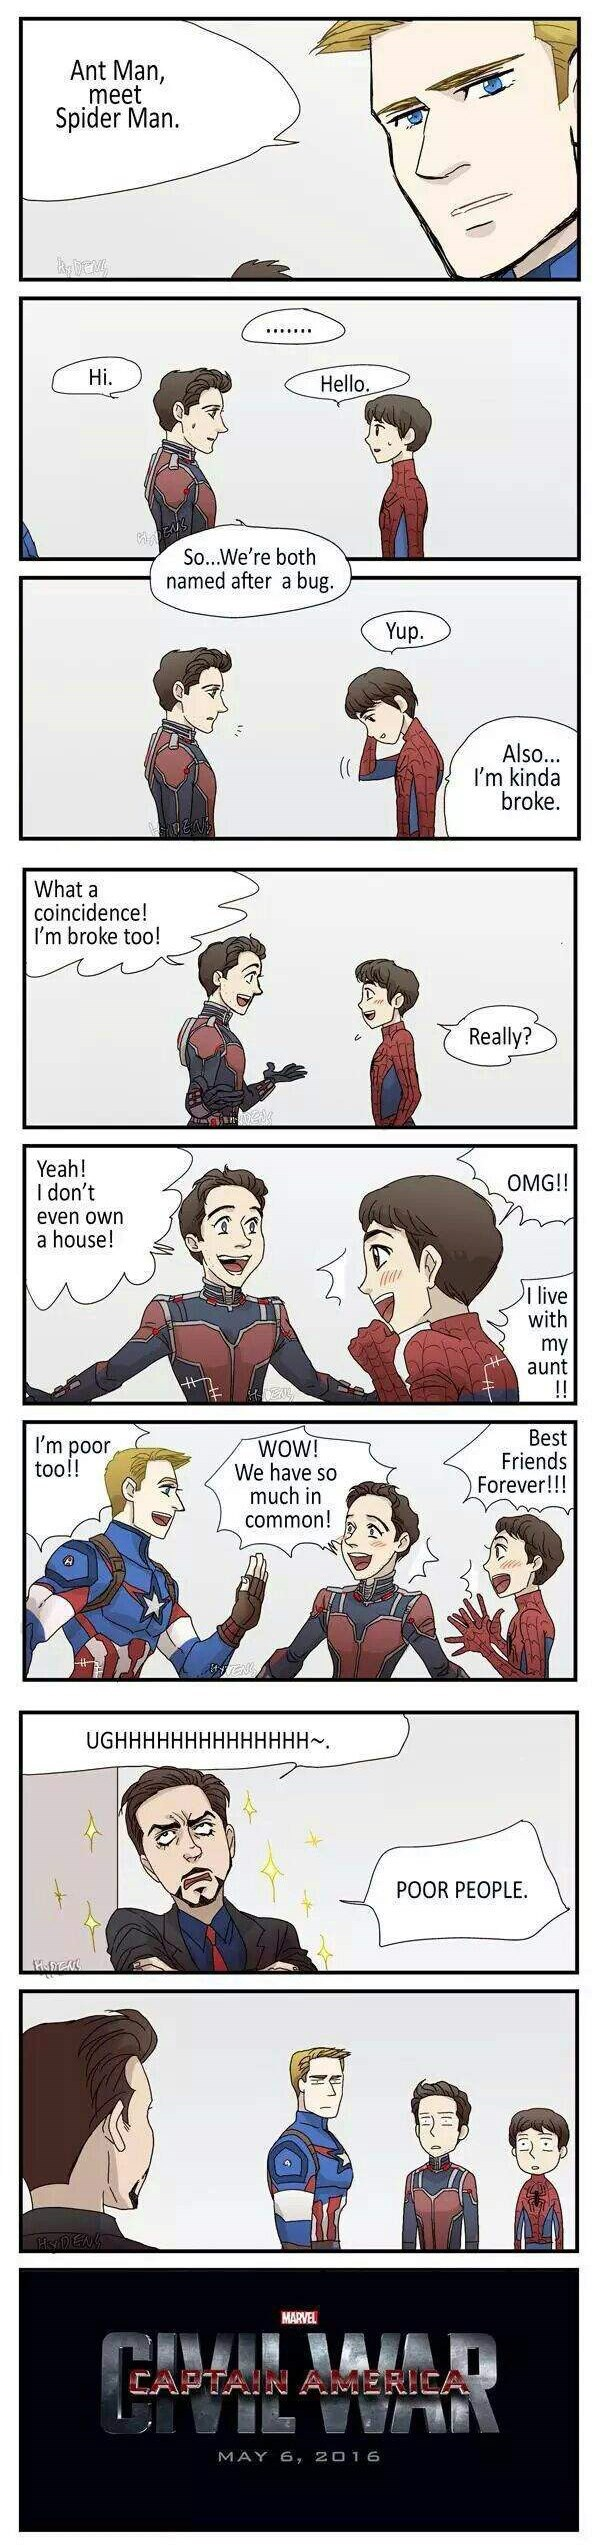 Civil War Plot Revealed